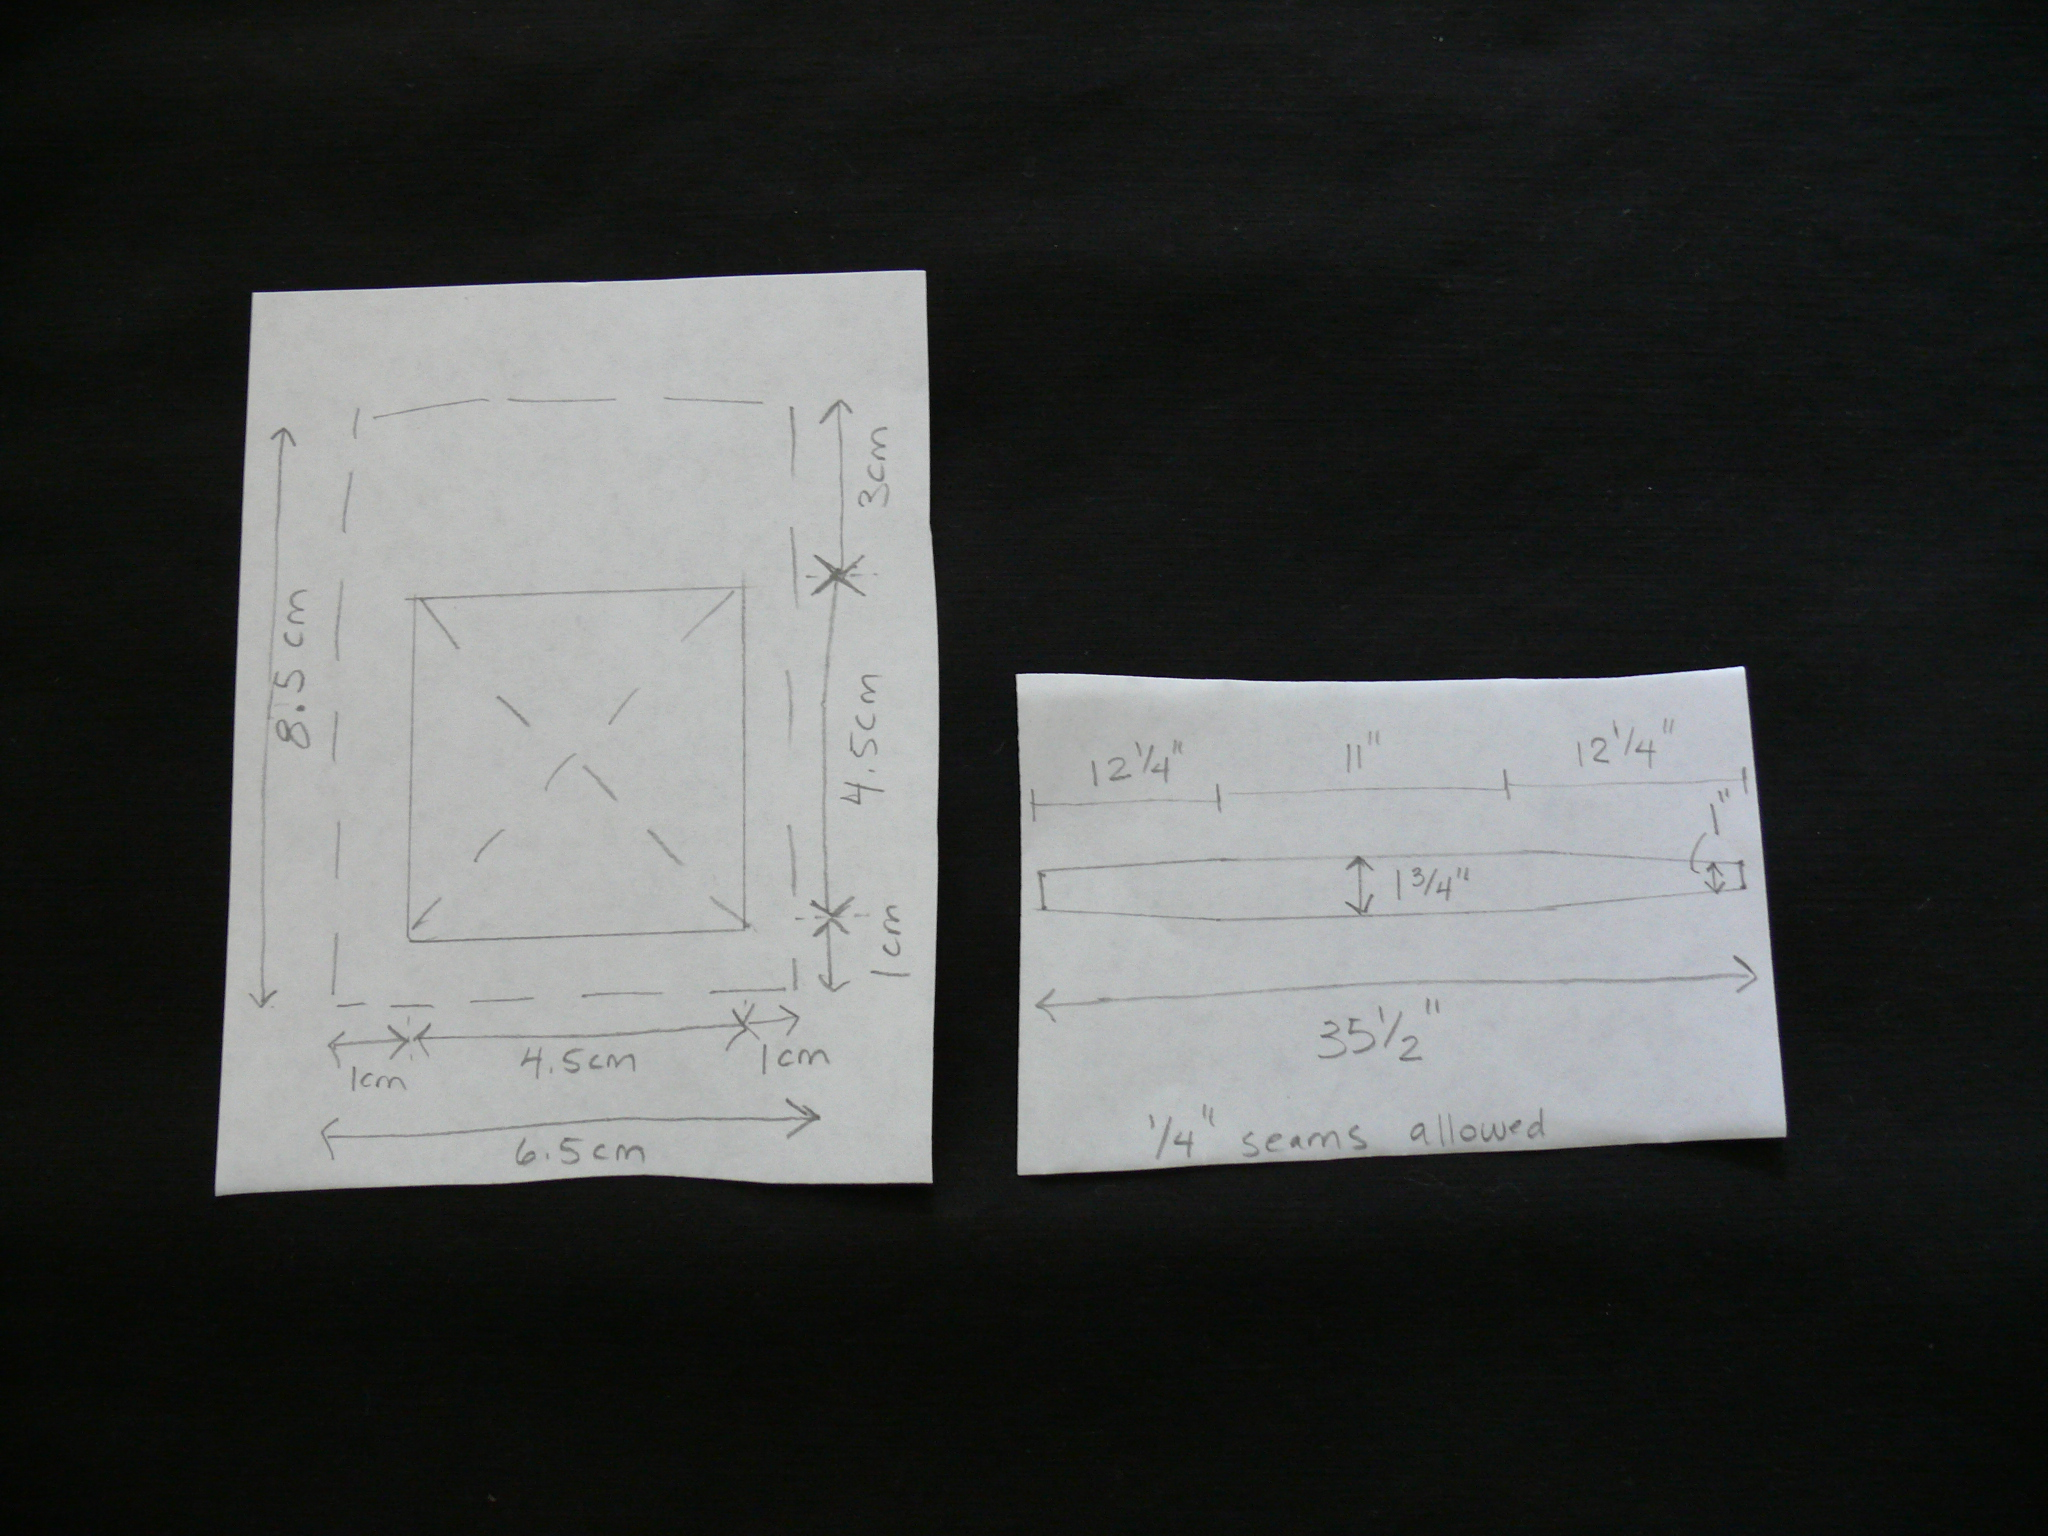 Measurements for the shoulder strap reinforcements (on the left), and the bottom strip (on the right) including seam allowances.